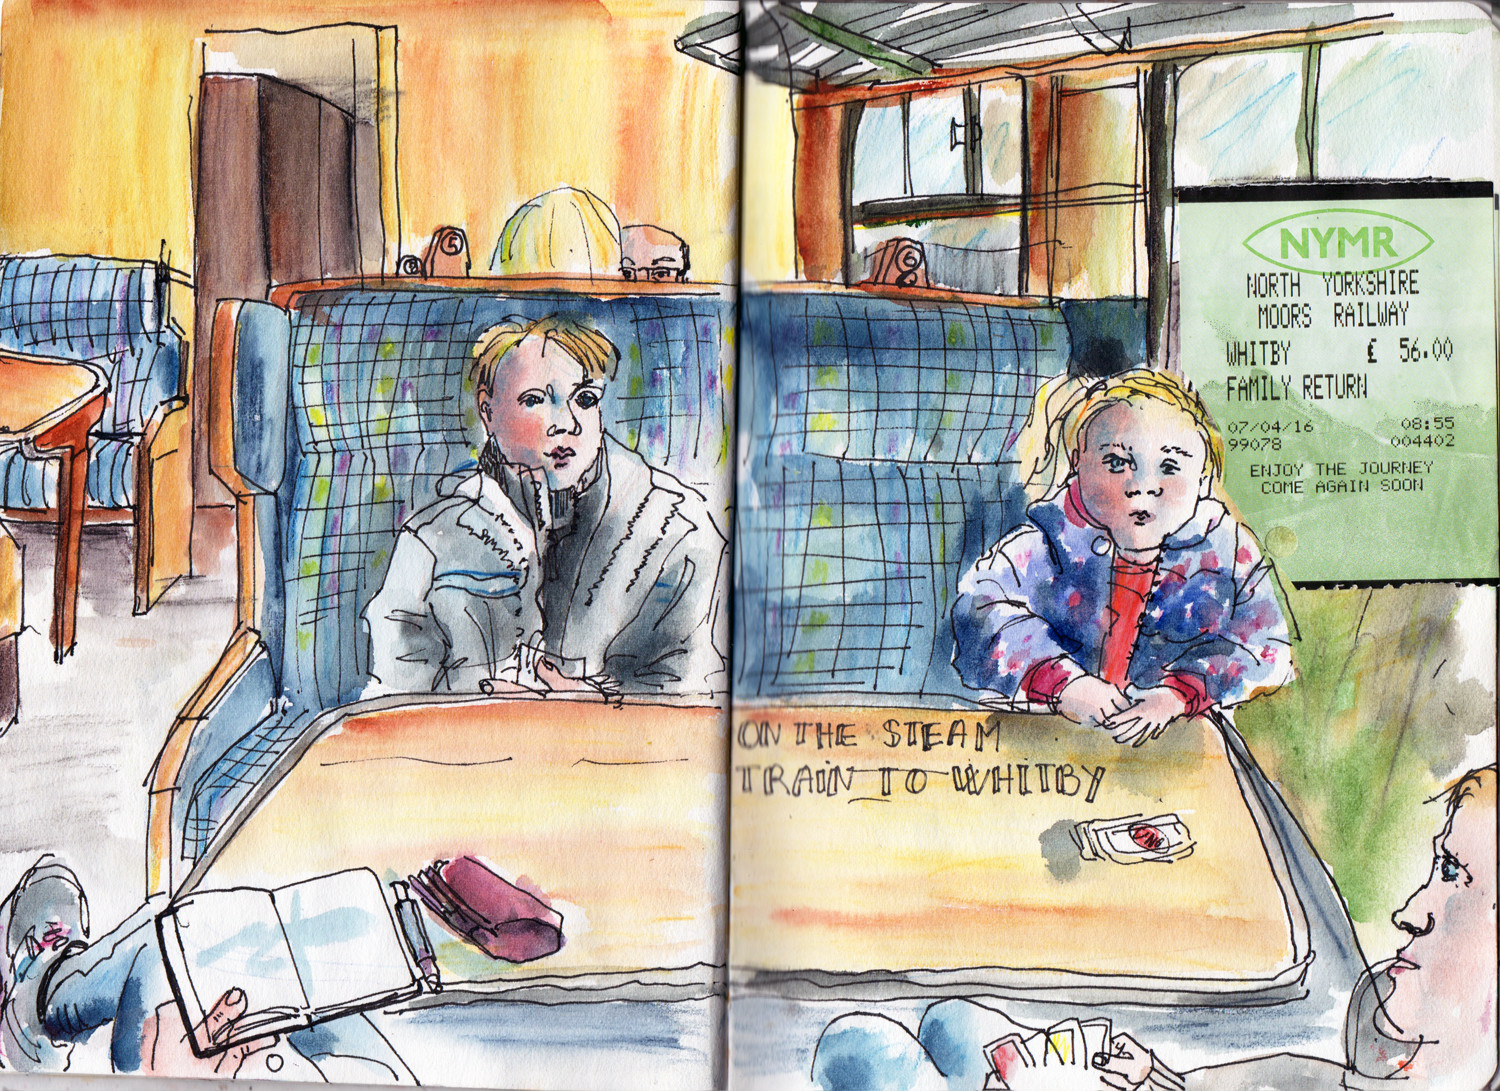 Steam Train to Whitby - Sketch by Sophie Peanut